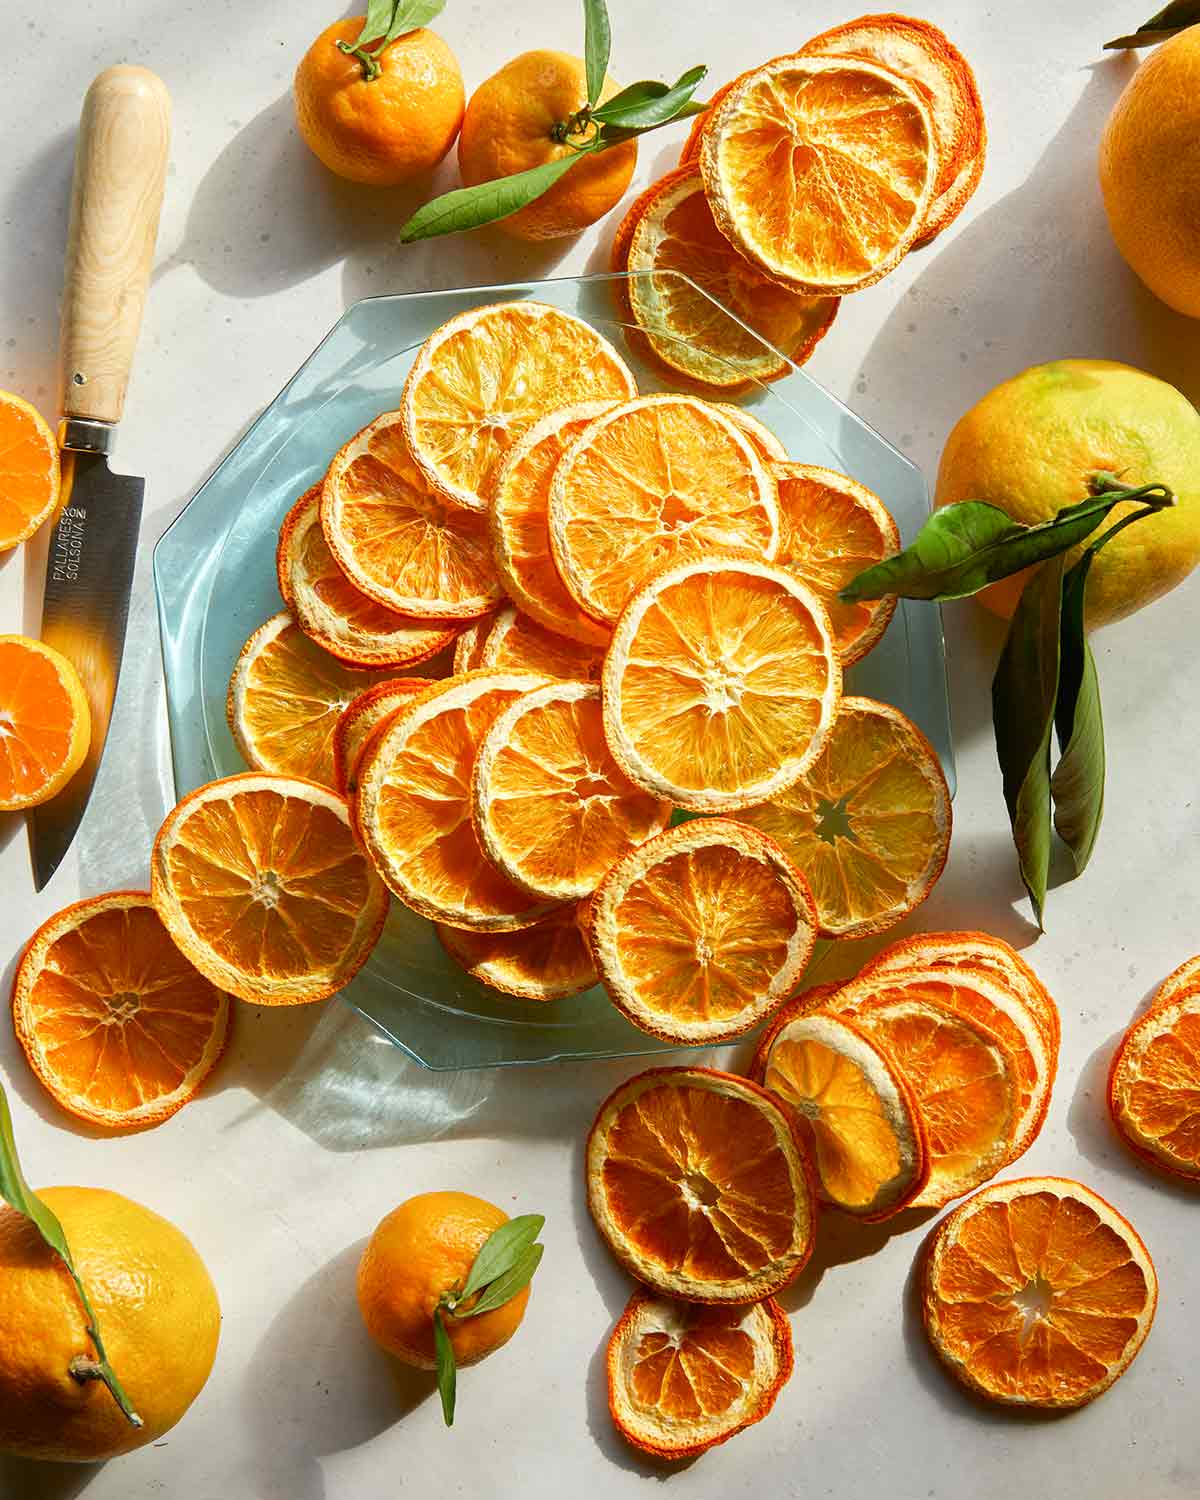 Dehydrated orange slices on a plate with some whole oranges next to it.